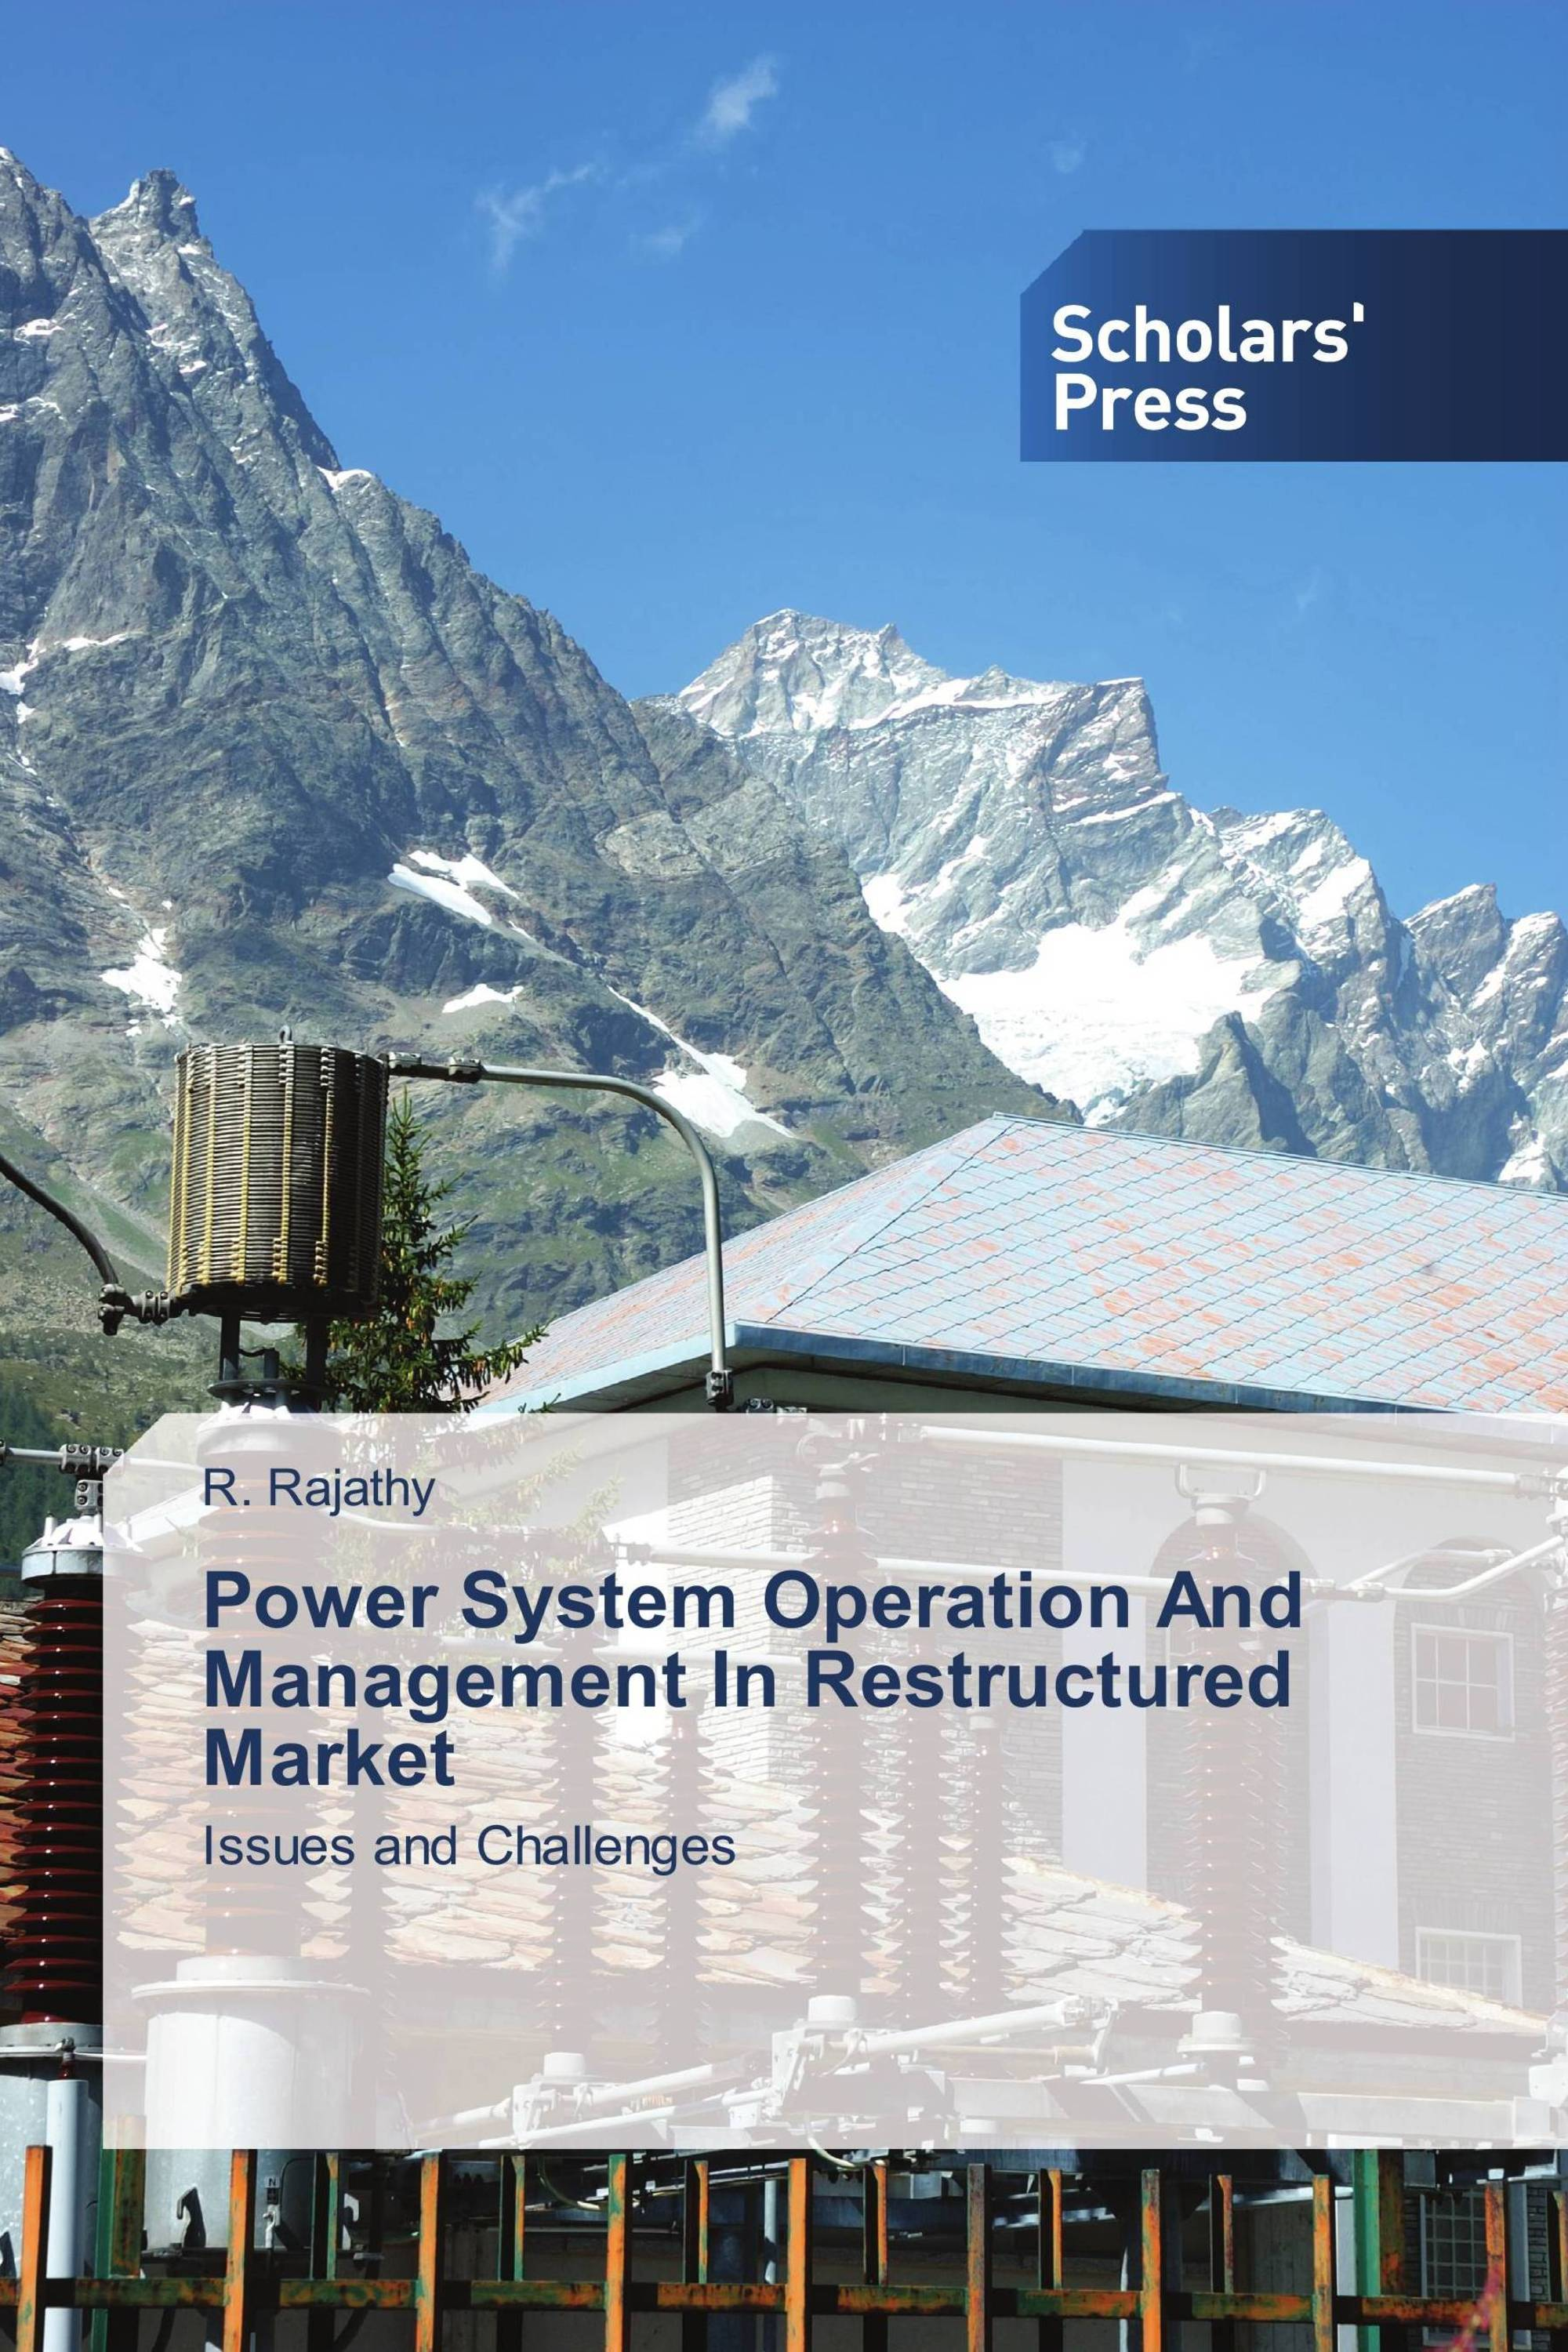 Power System Operation And Management In Restructured Market